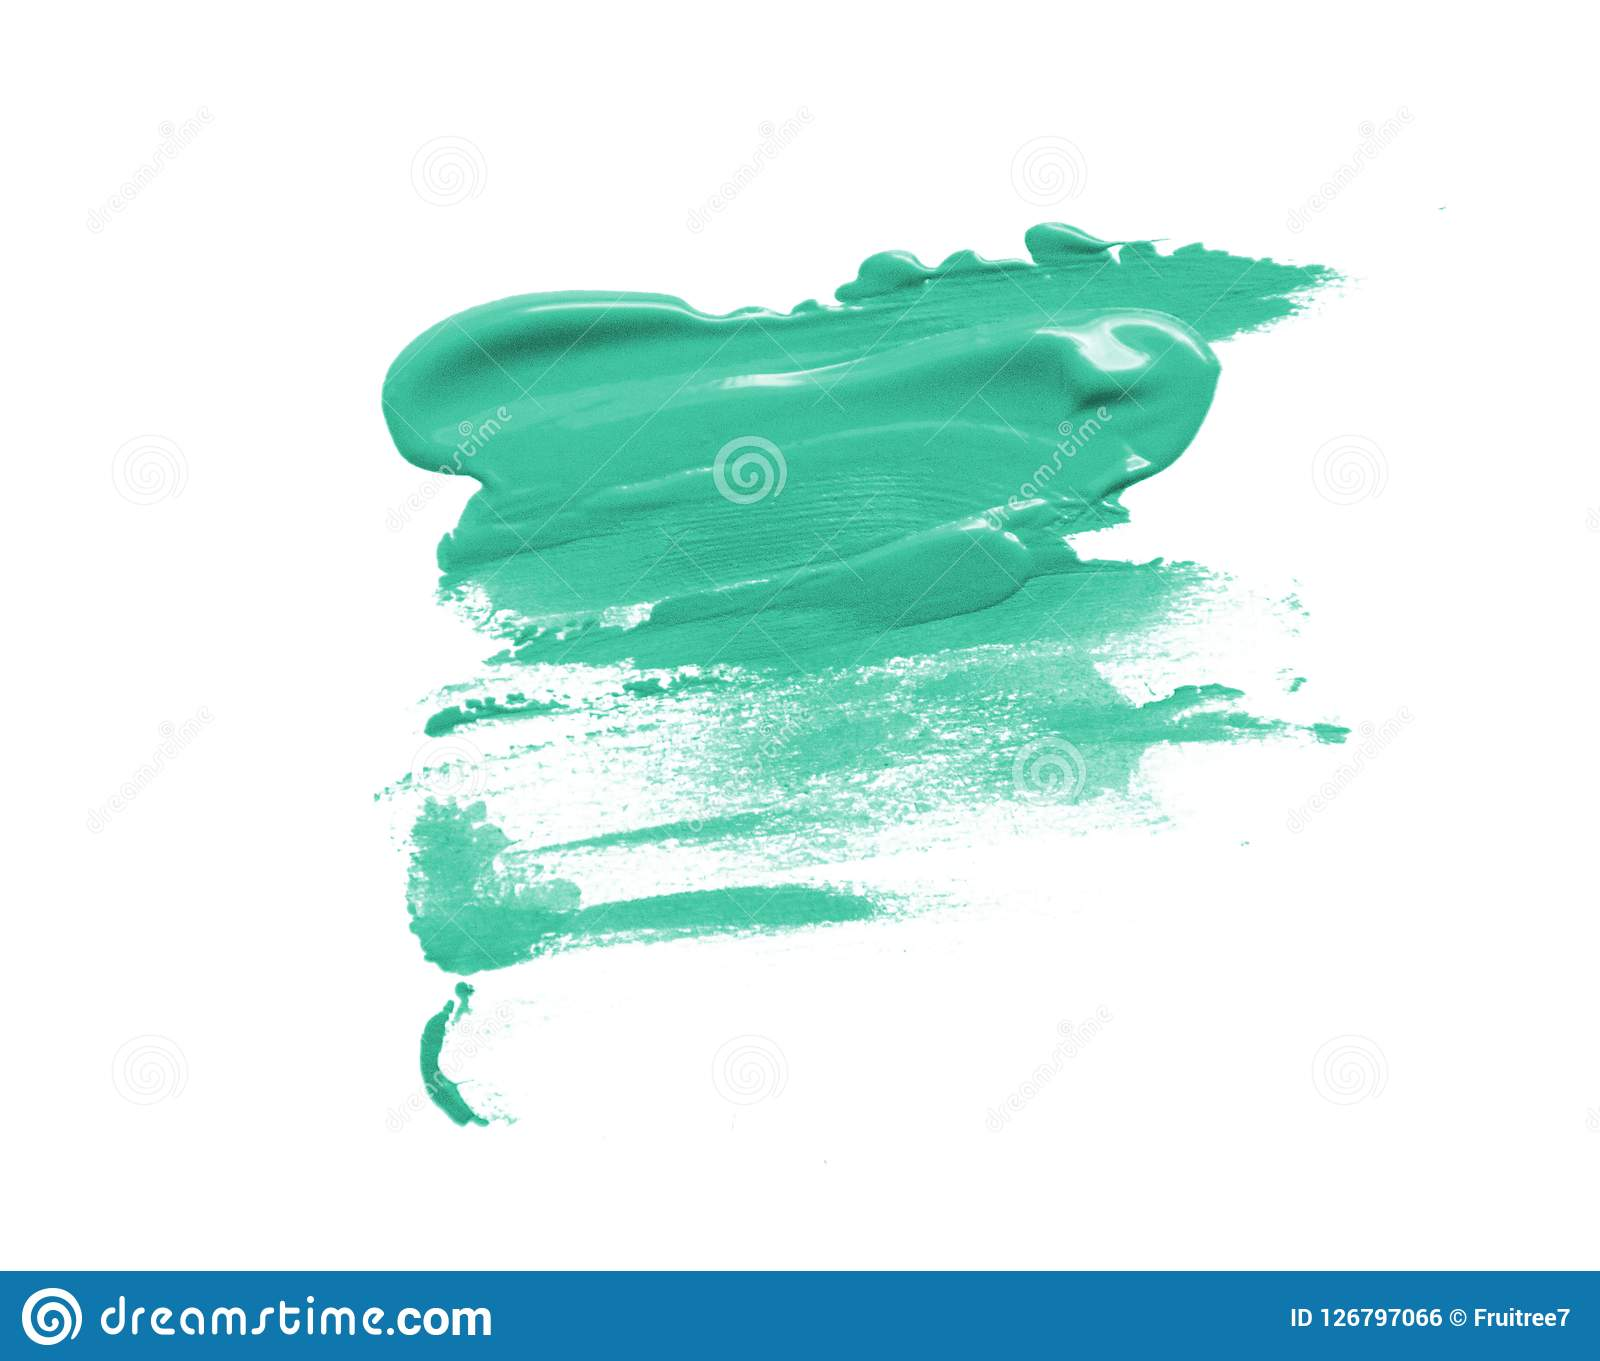 Turquoise beautiful paint brush spot stroke on isolated white background